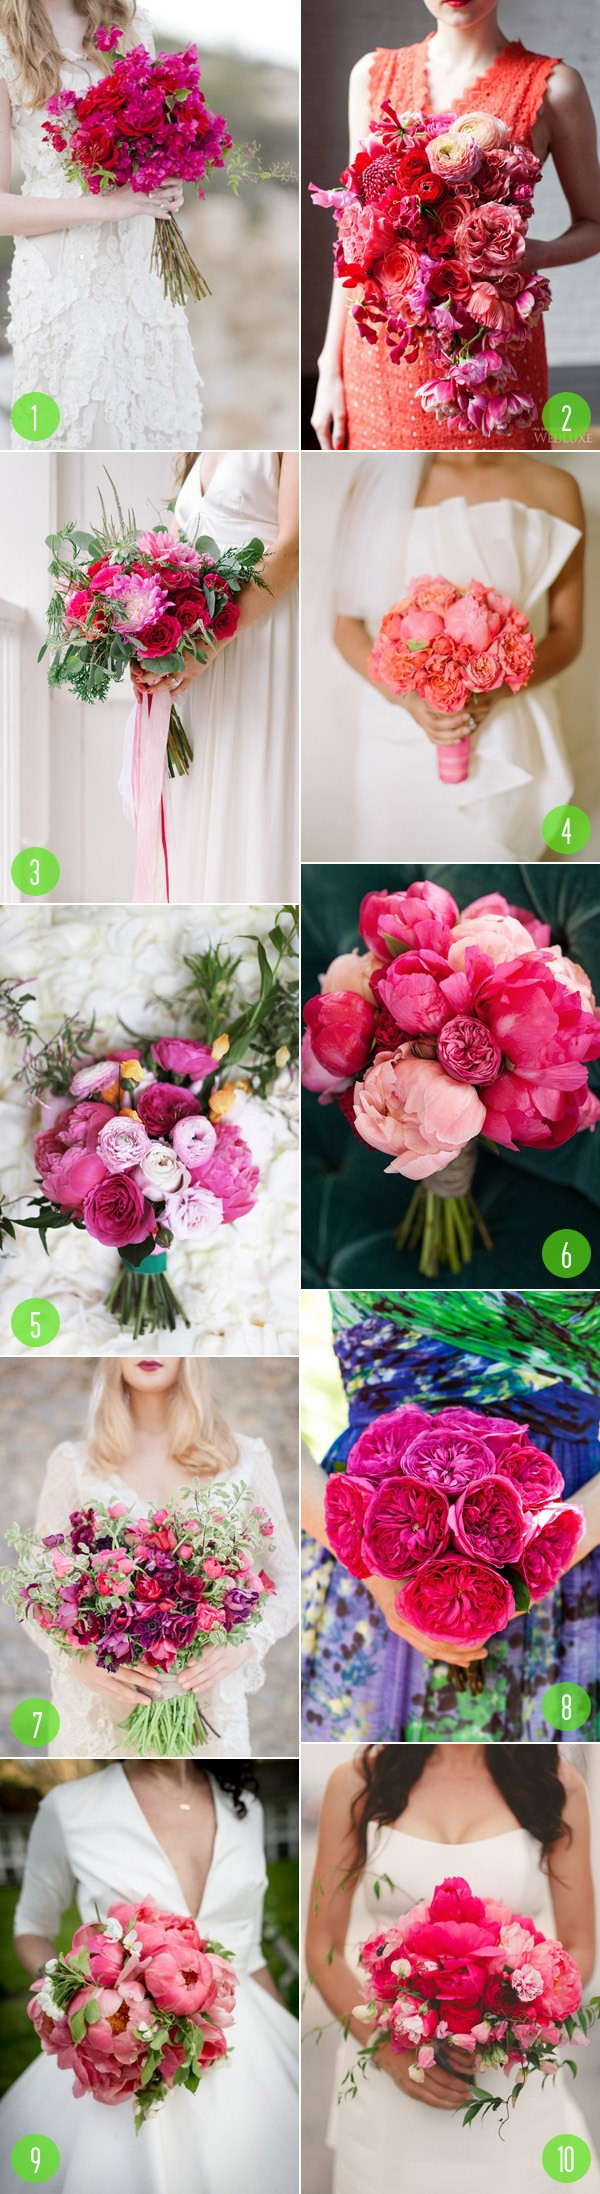 top 10: pink bouquets